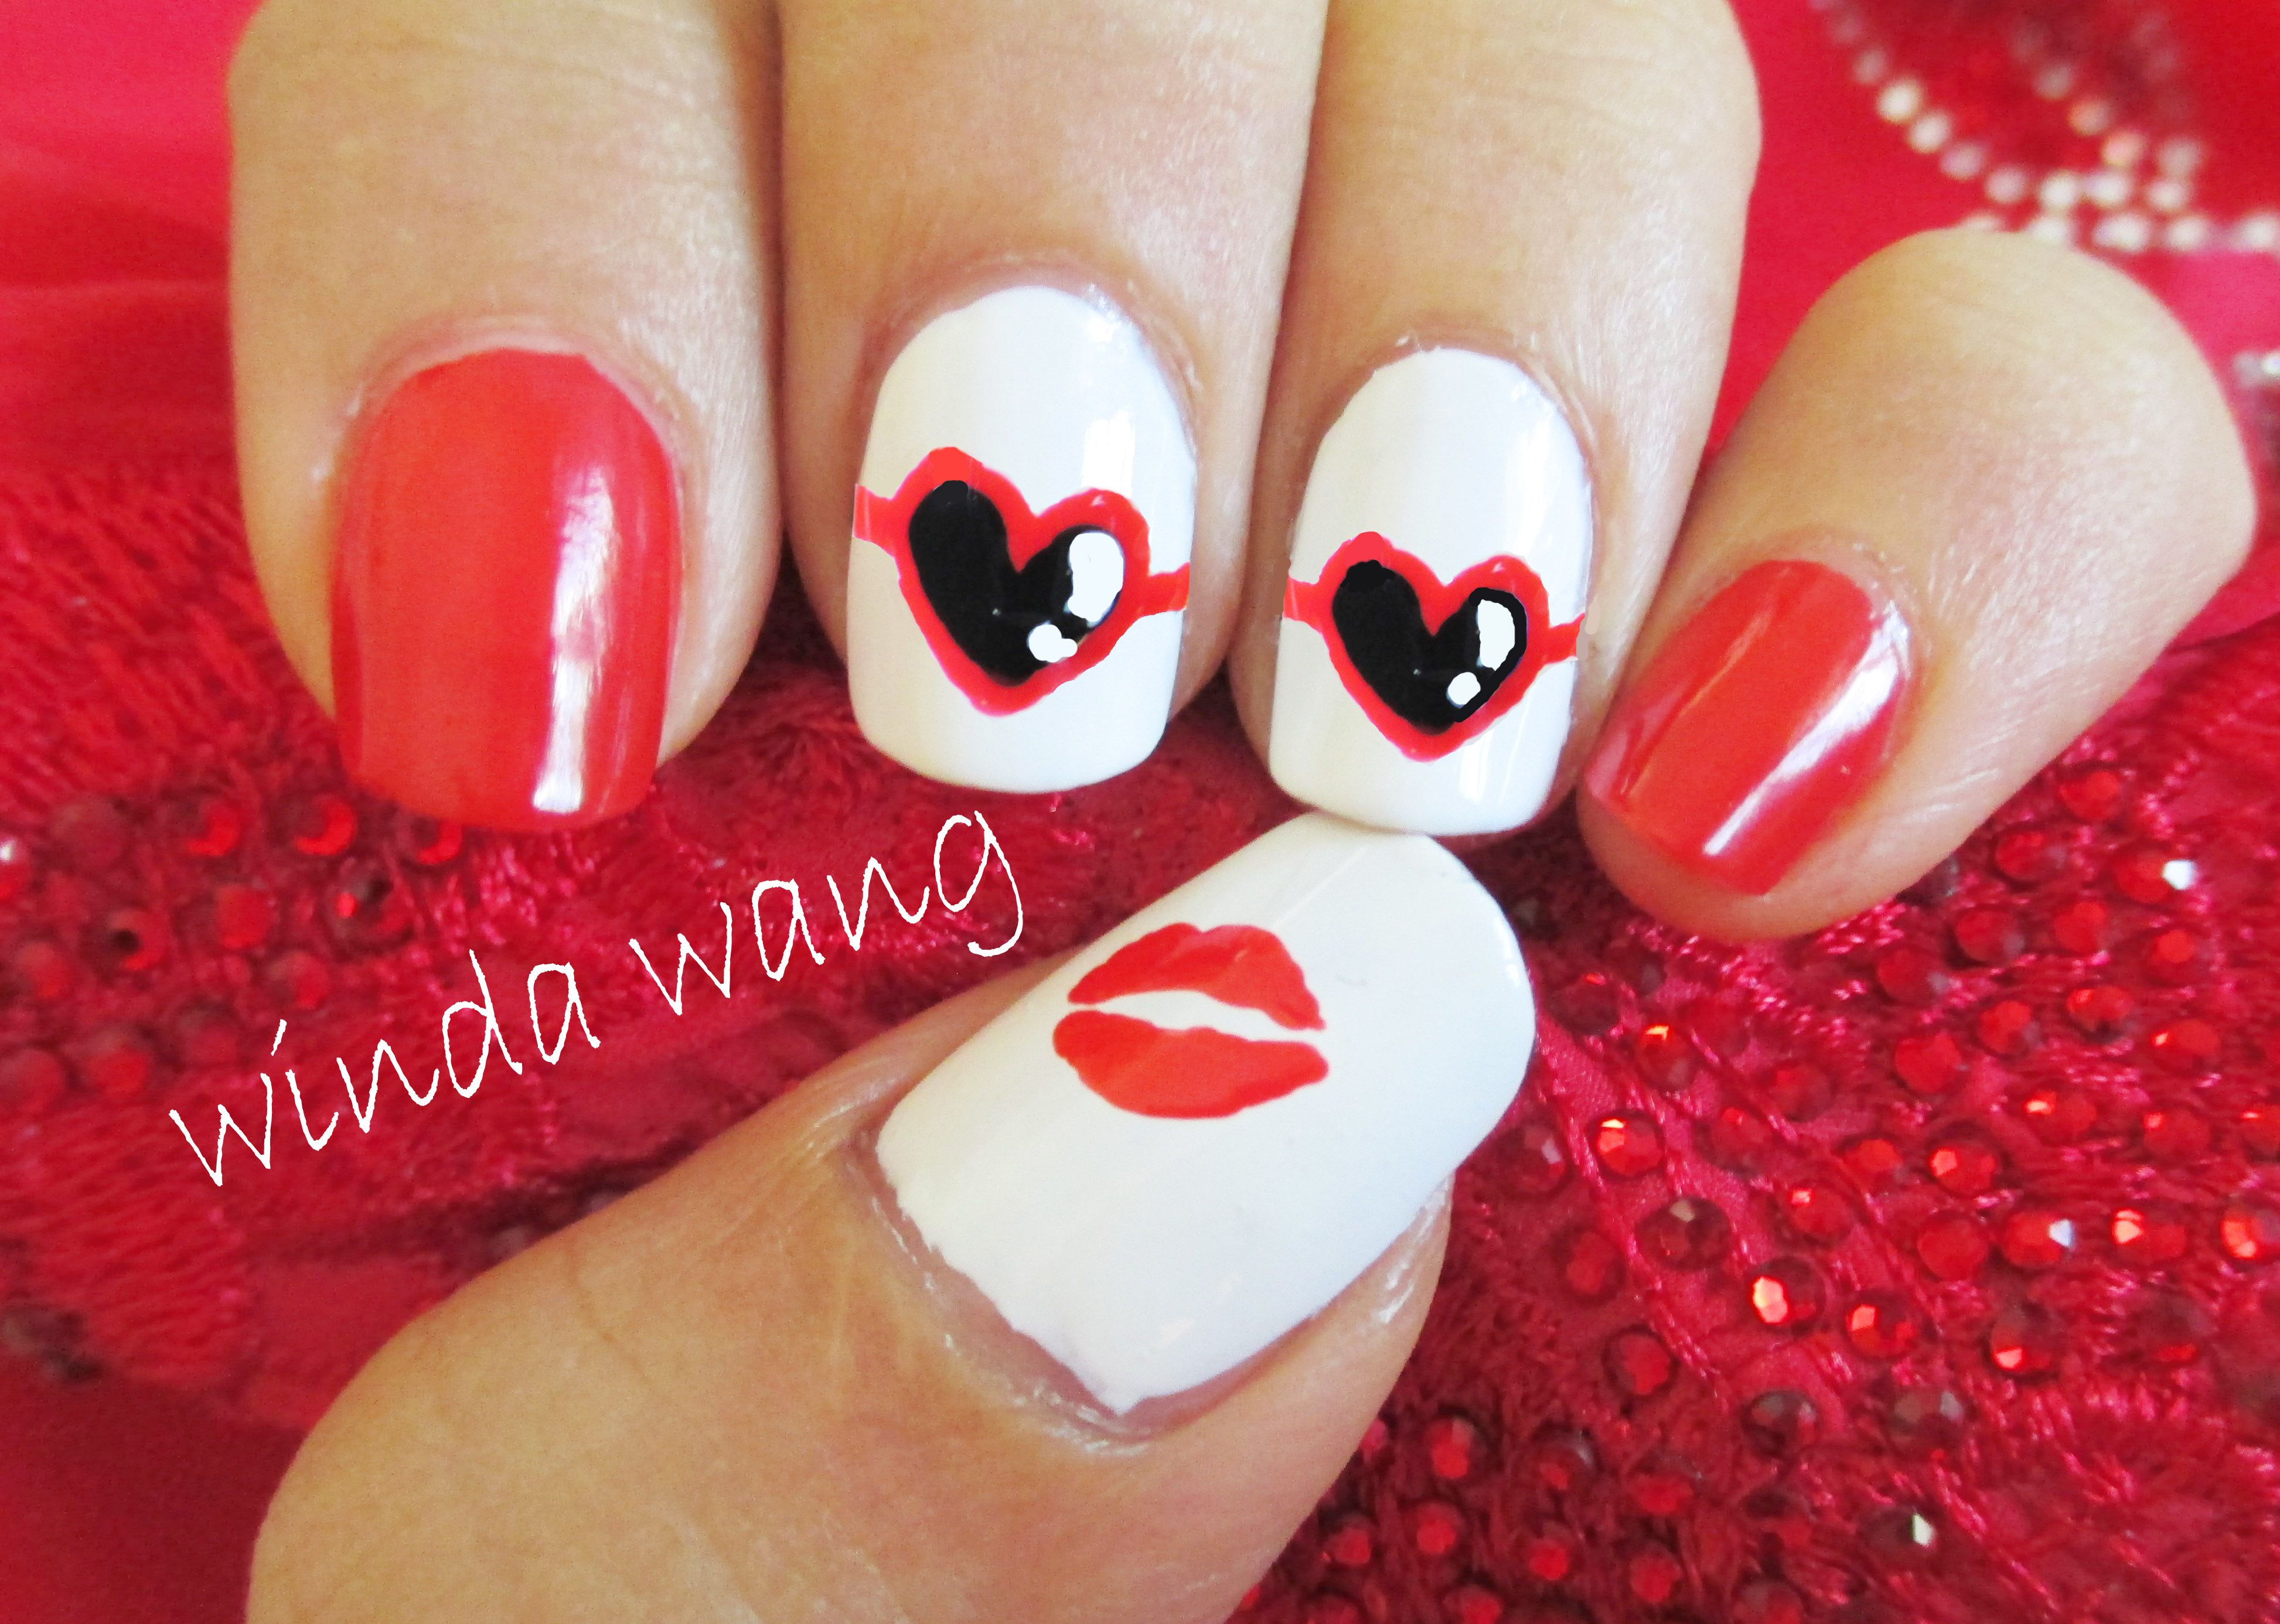 Taylor Swift 22 Music Video Inspired Nail Art Design Click Here To See The